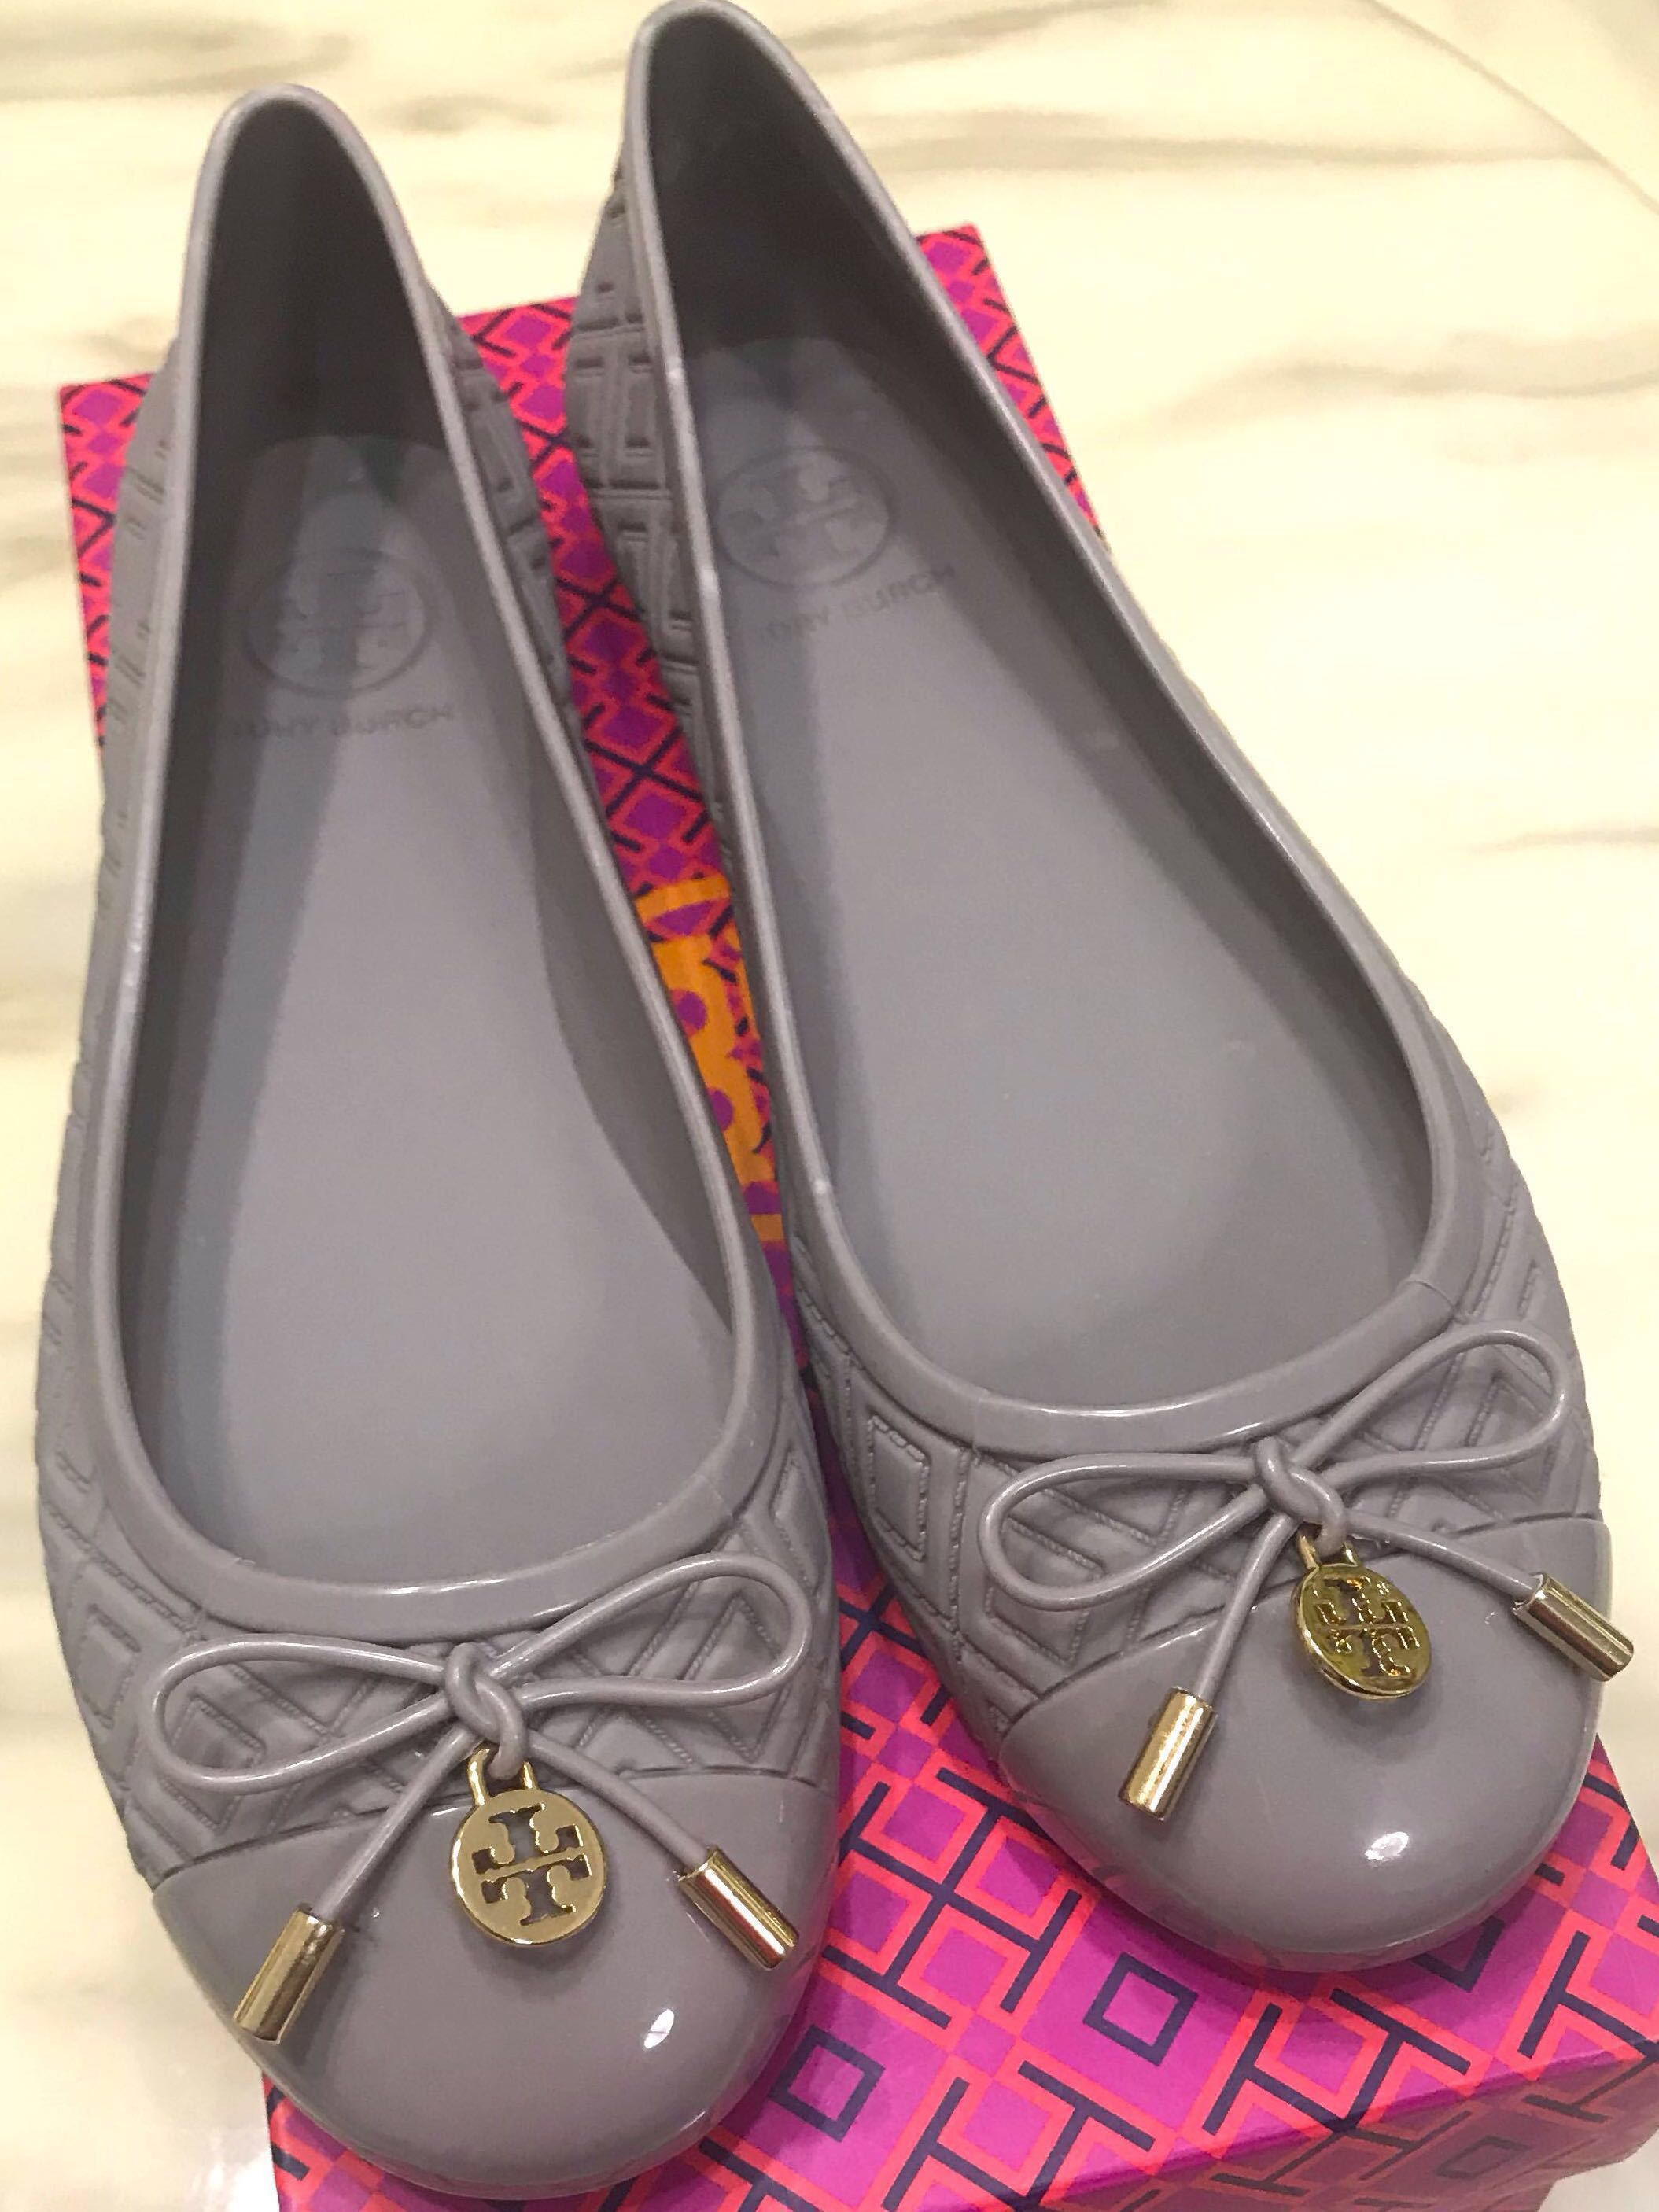 a941567a215 Tory Burch Jelly Ballet Flats, Women's Fashion, Shoes, Flats ...